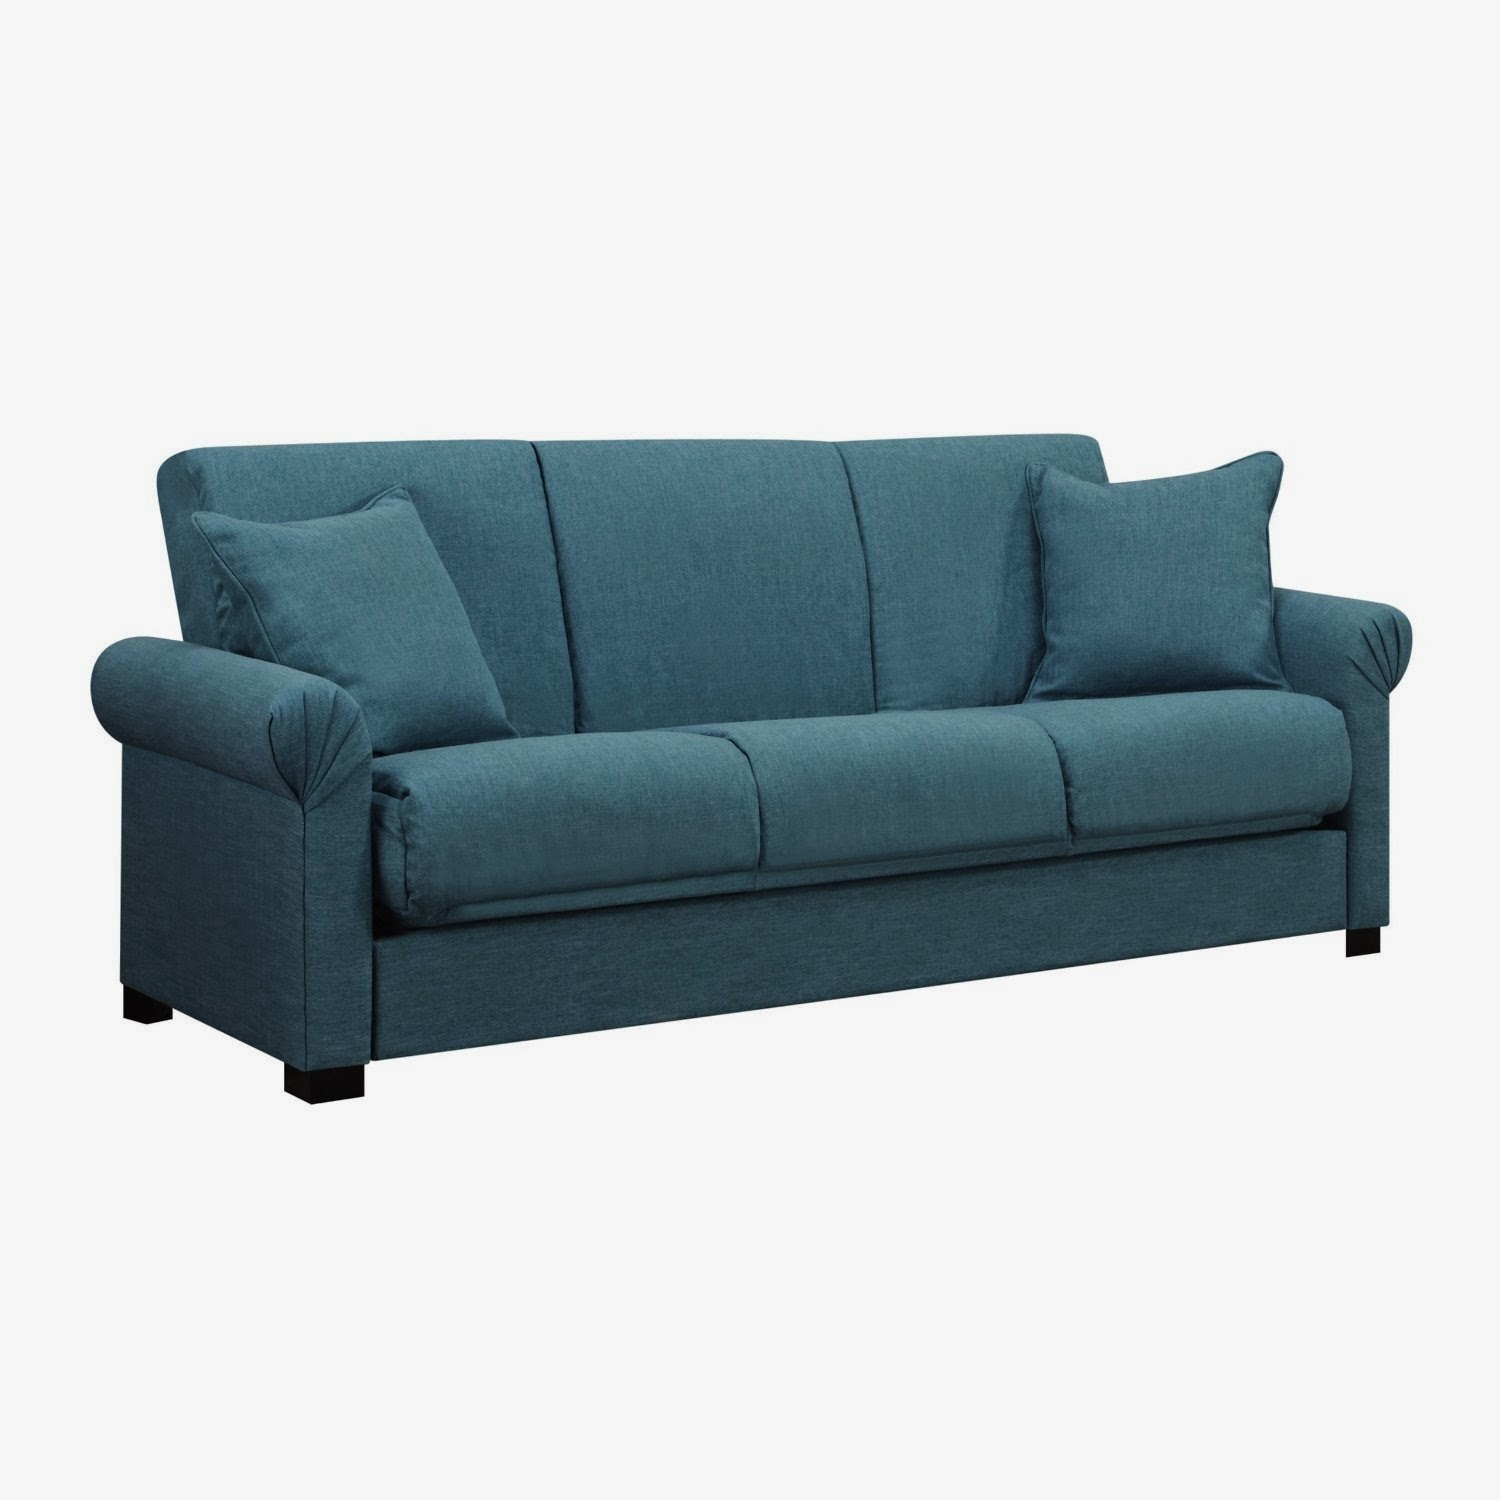 Blue Sofa Barclay Butera Ridgecrest Loveseat Regular 3 640 On Blue Sofa Home Furniture